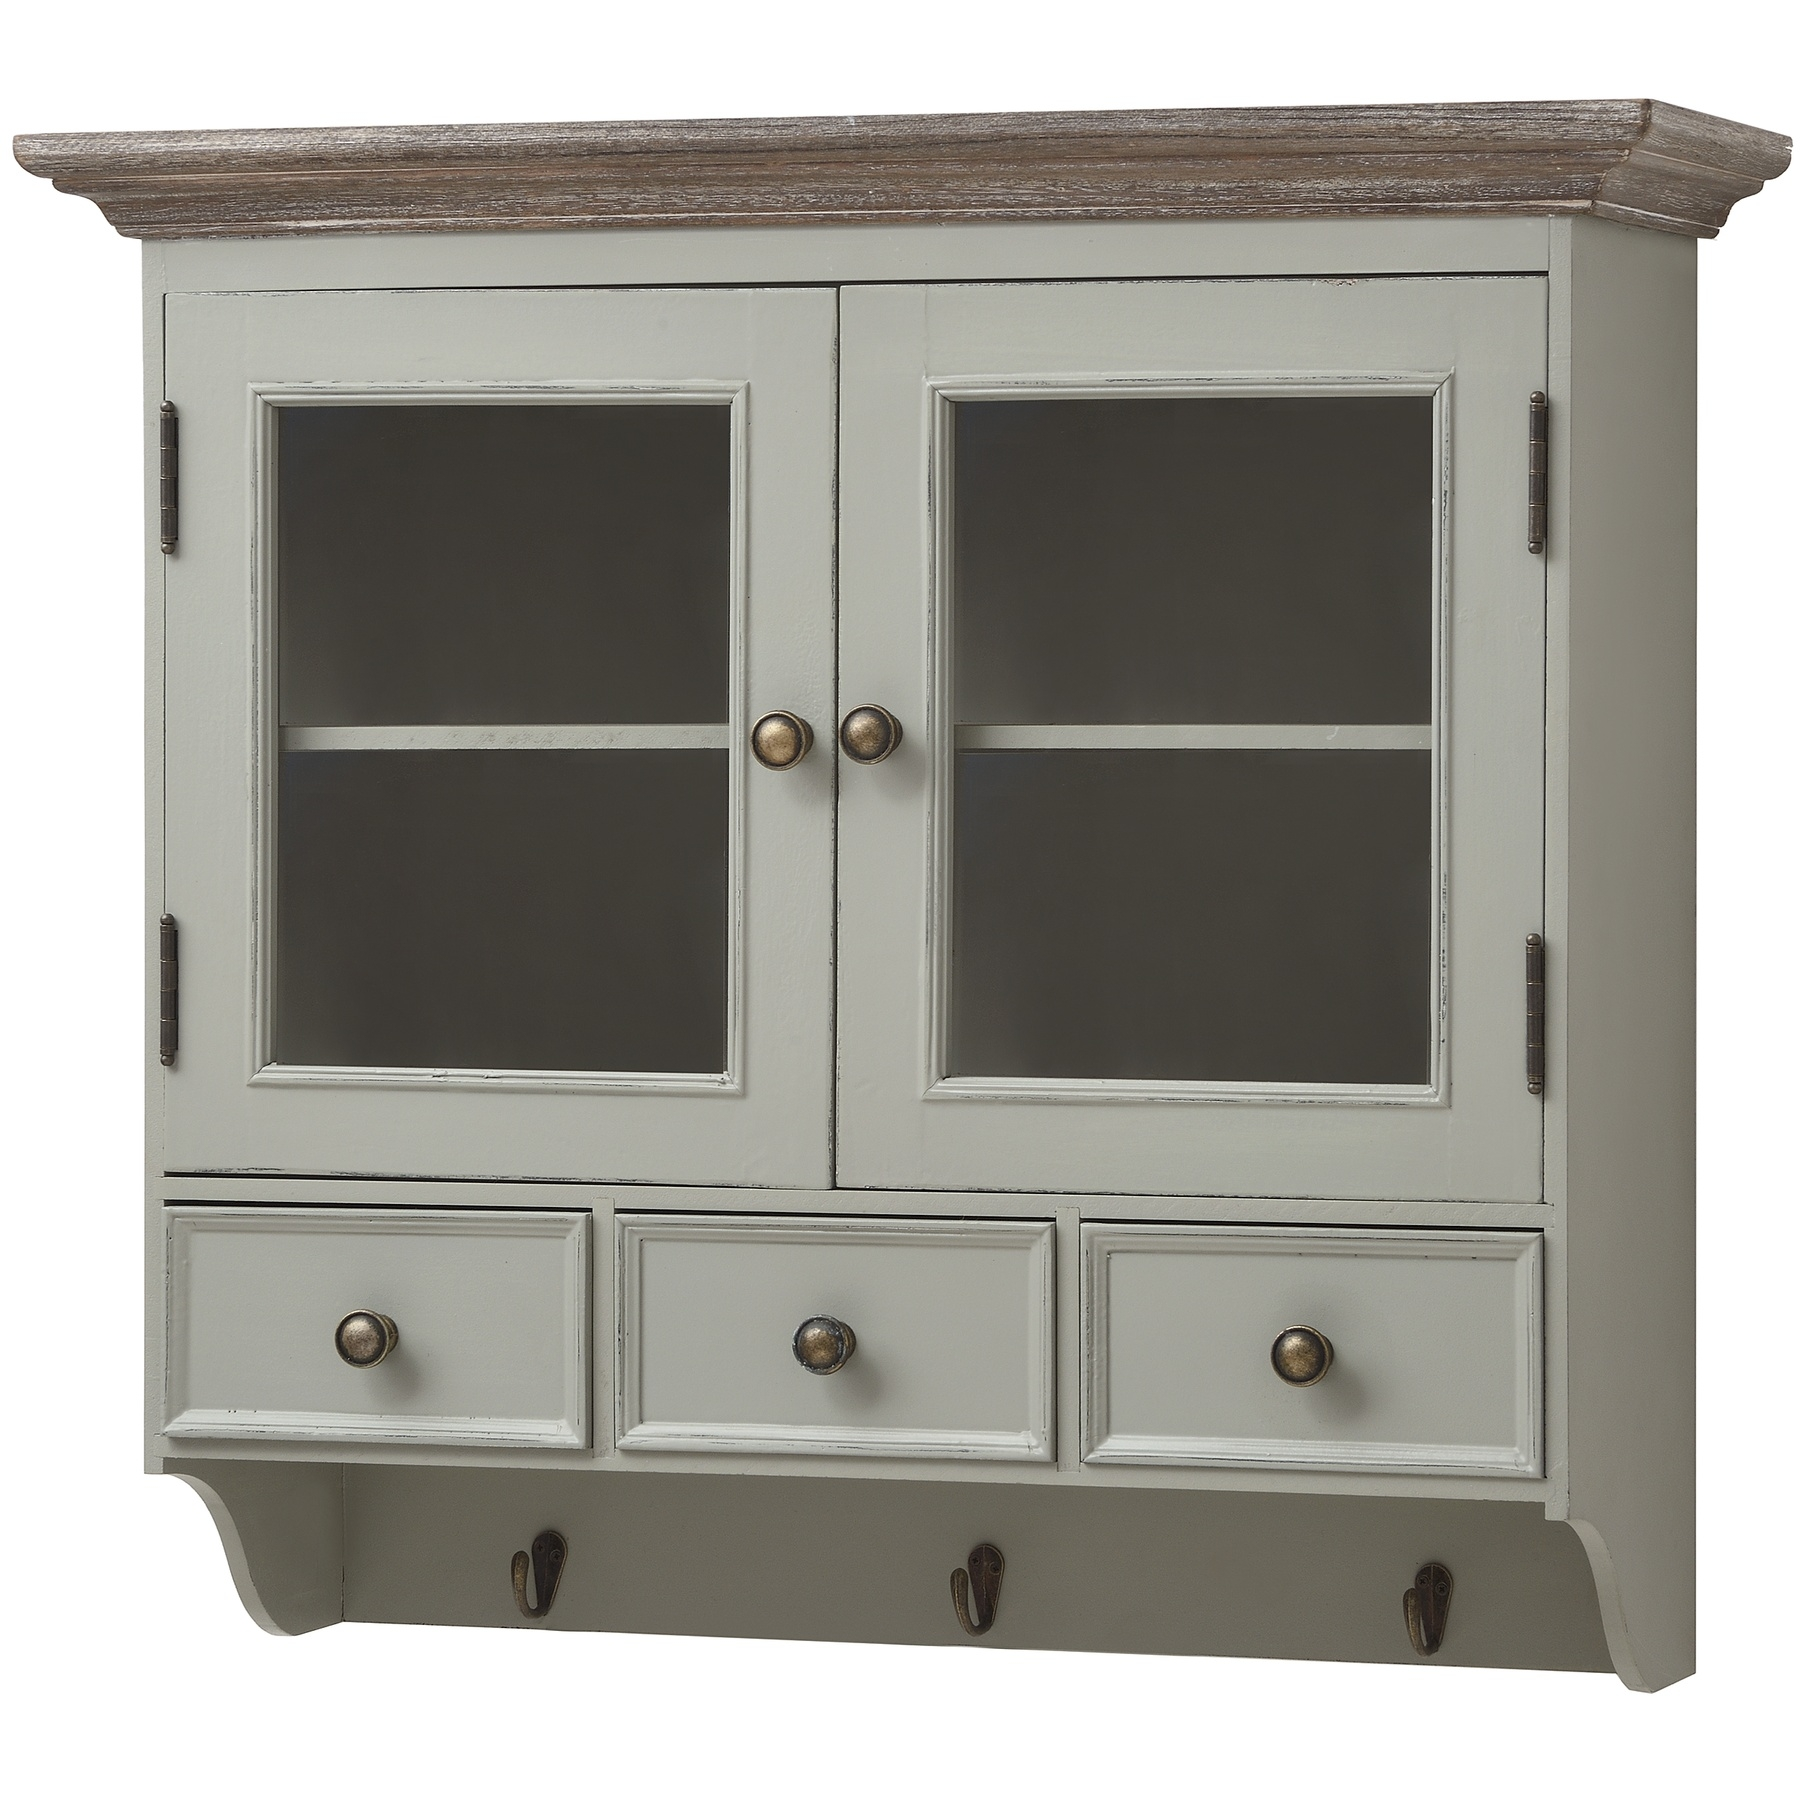 Wall Mounted Kitchen Display Cabinets